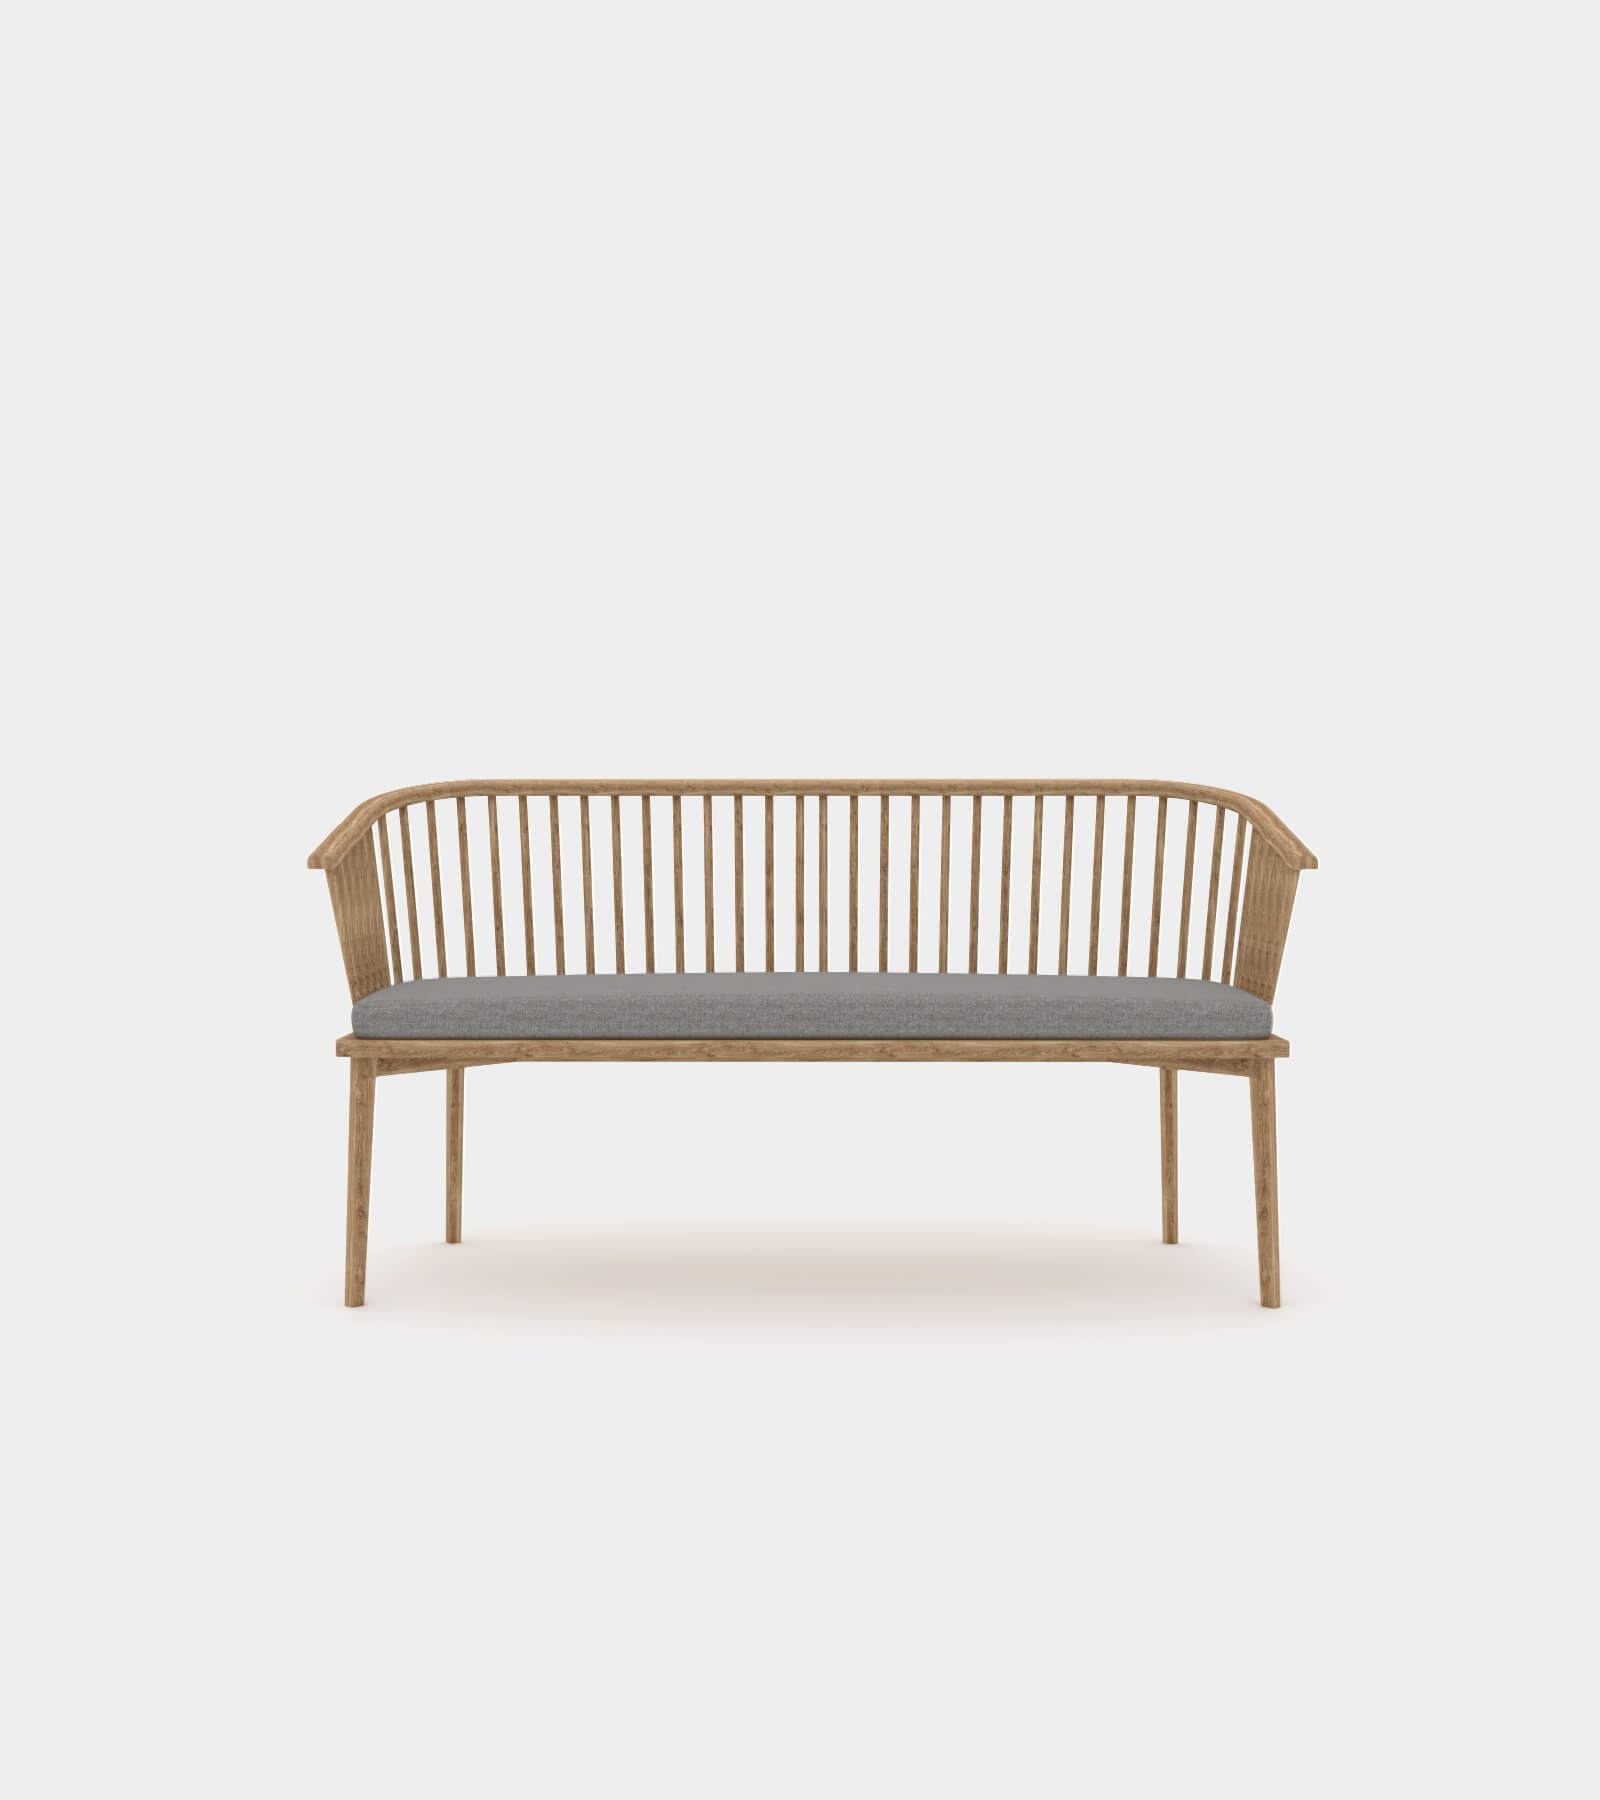 Classic wood bench with struts - 3D Model